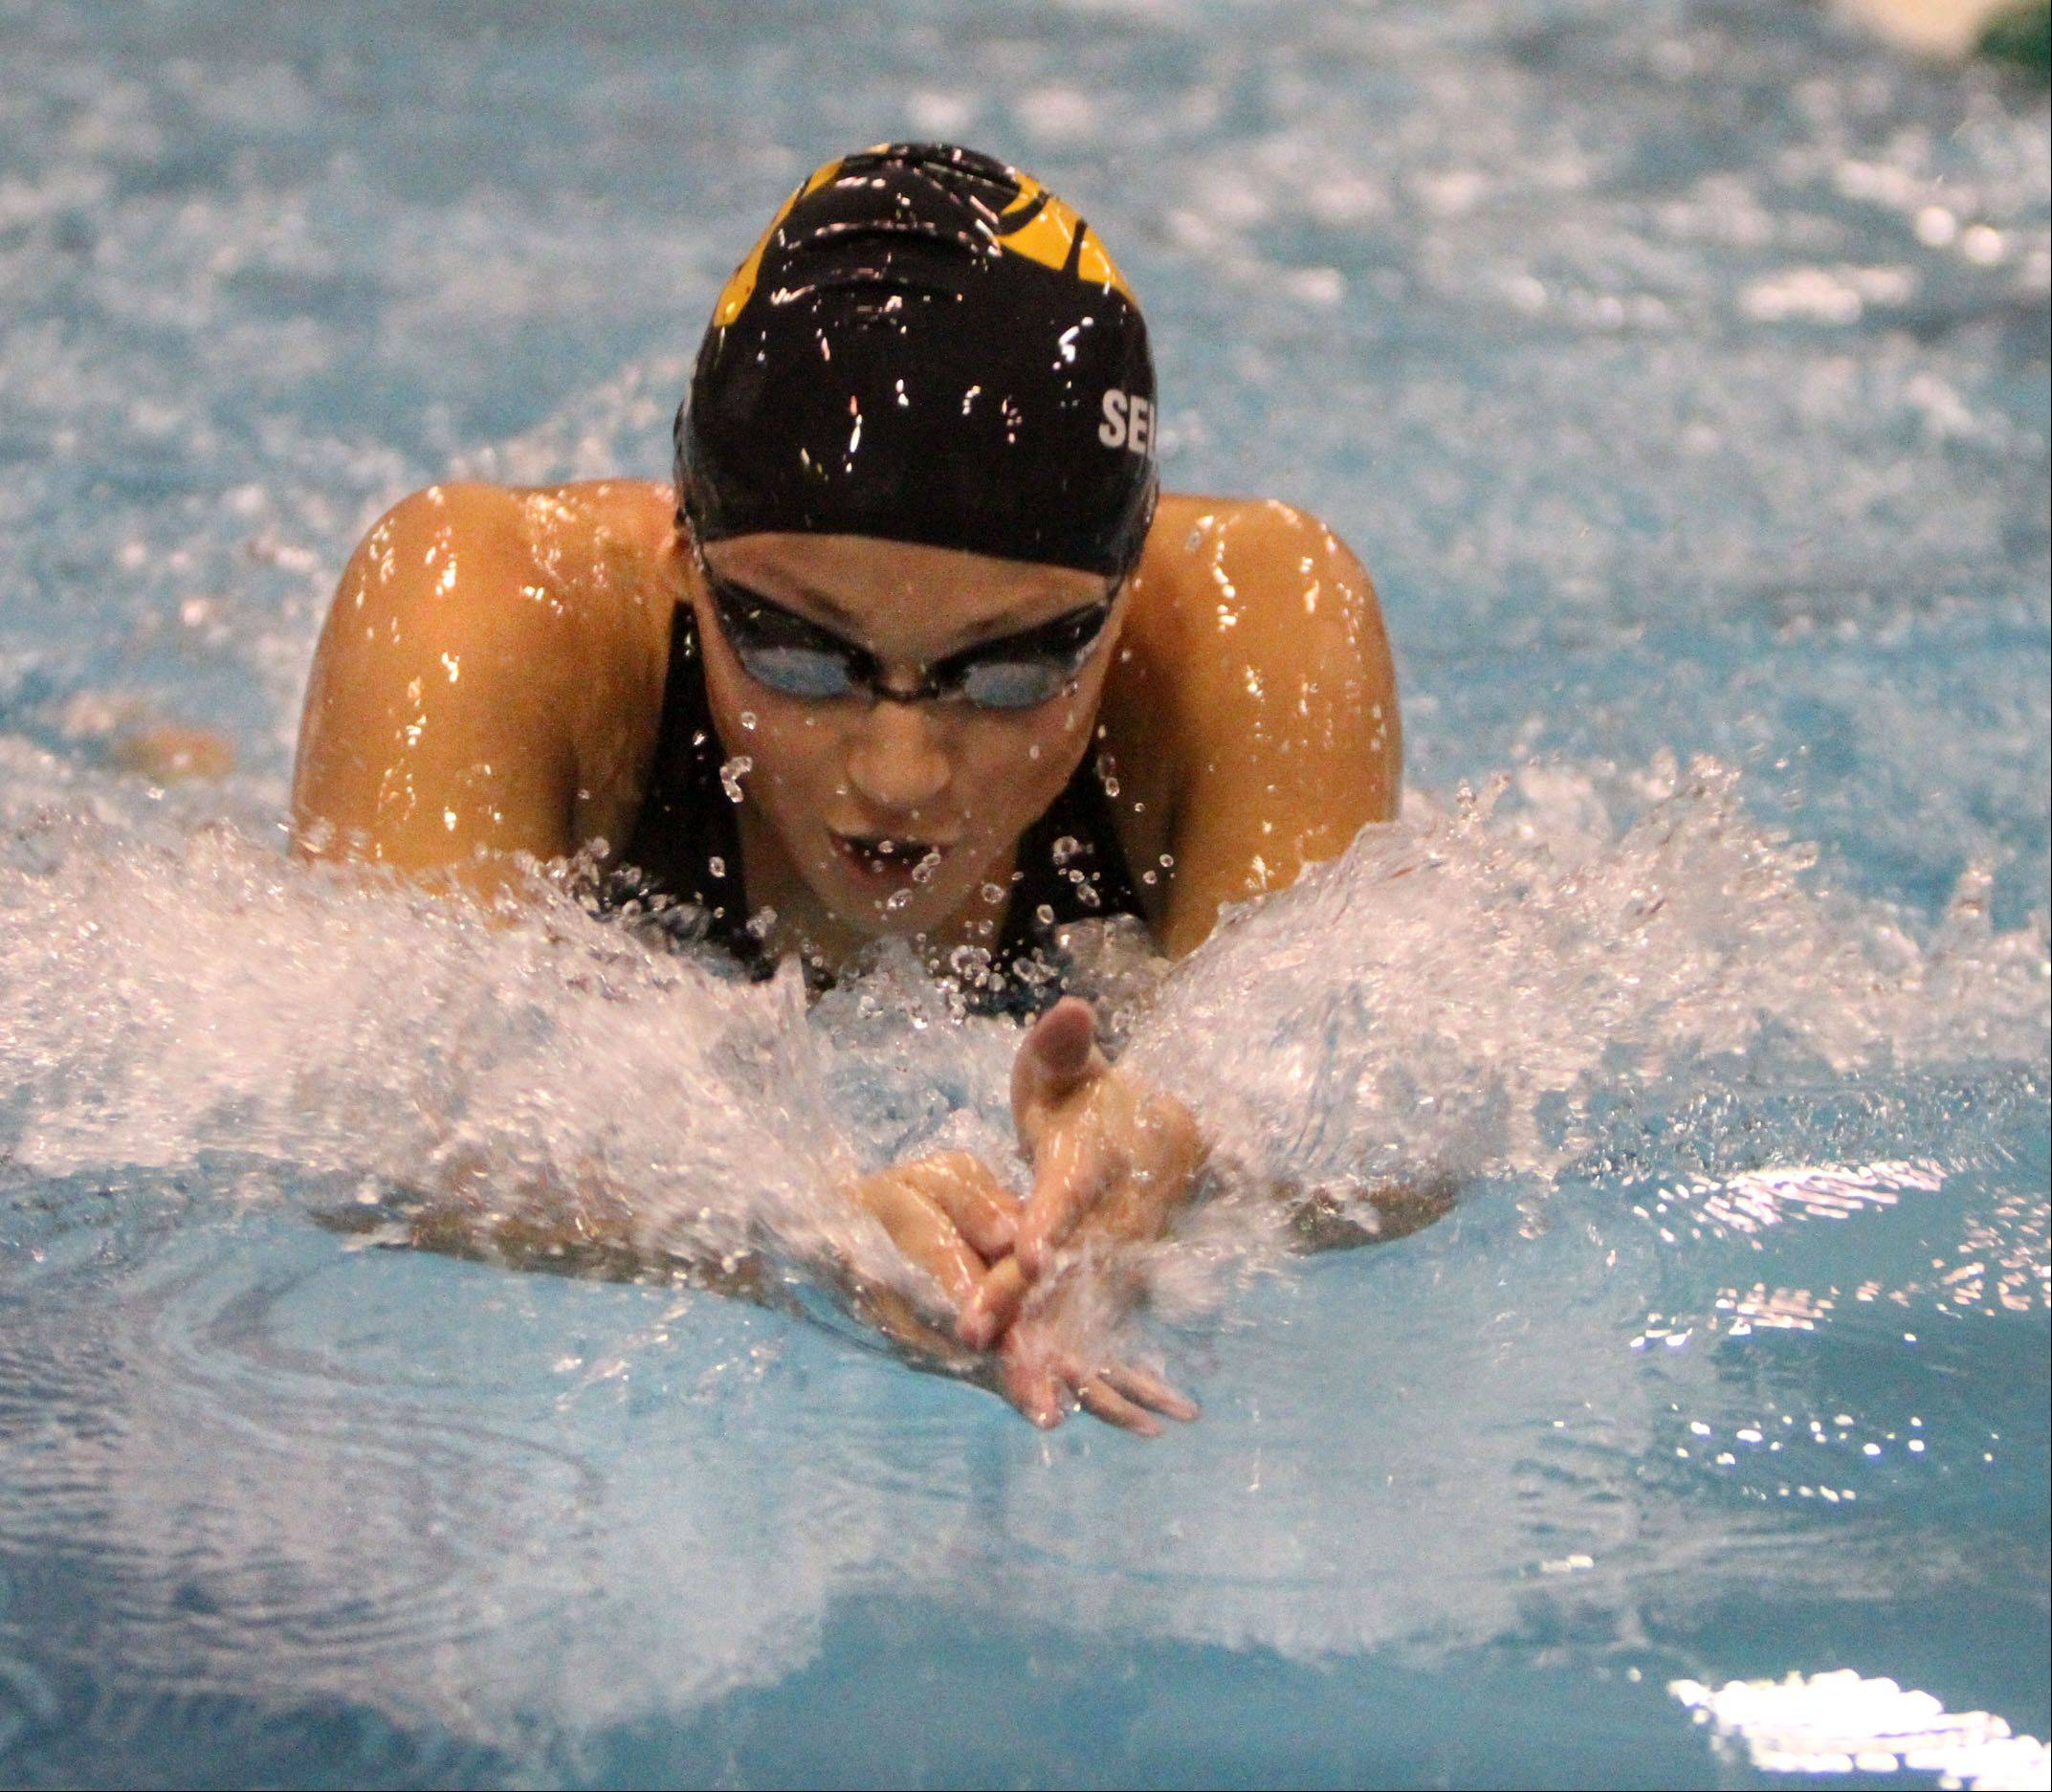 Metea Valley's Megan Sellers competes in the 100-yard breaststroke at the IHSA state final preliminaries in Winnetka on Friday, November 18th.